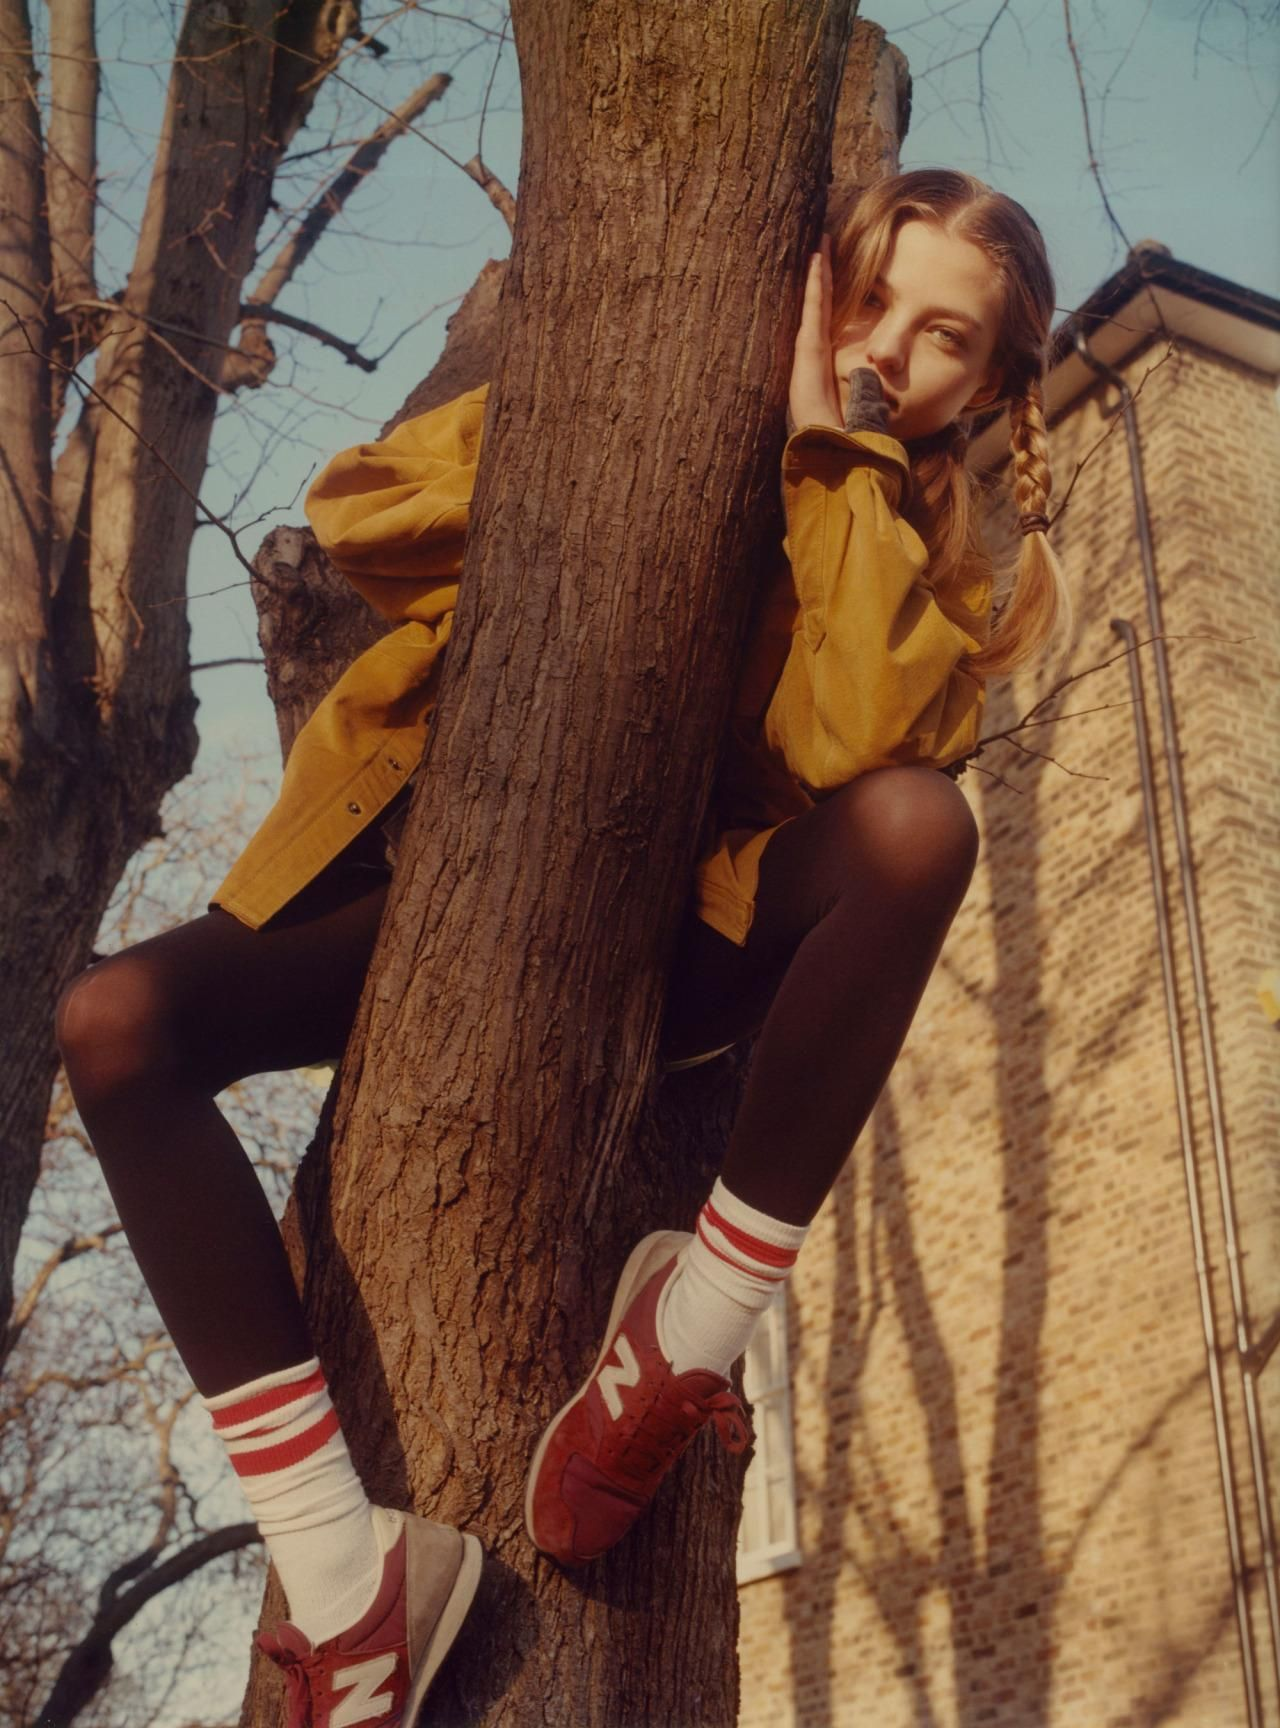 This Photographer Captures Teen Girls From The Perspective Of The -4166